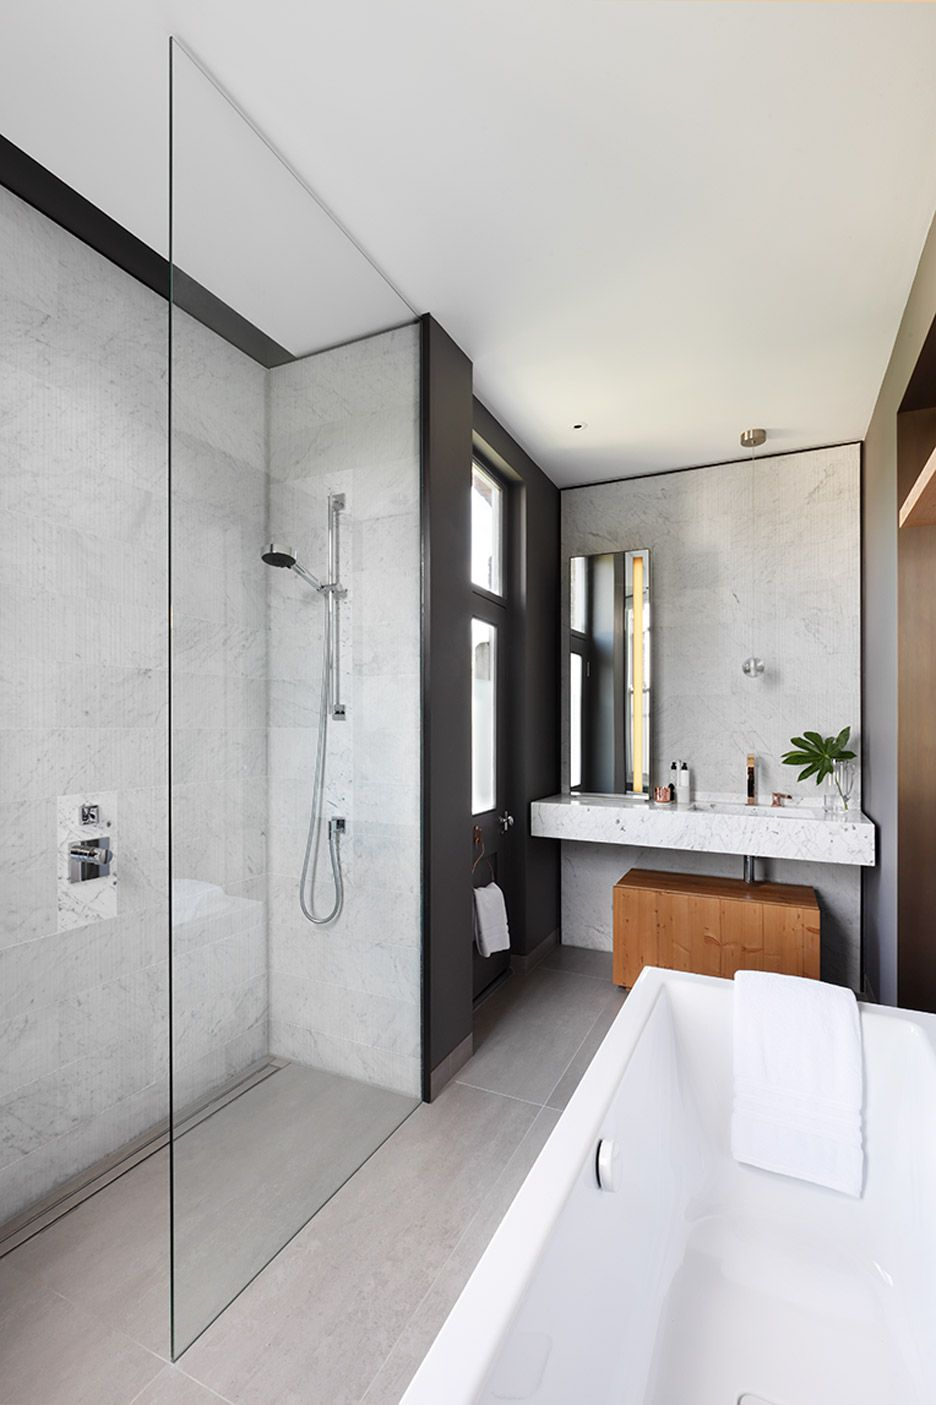 Maida Vale Apartment By MWAI Bathroom Pinterest Apartments - Luxury apartments bathrooms